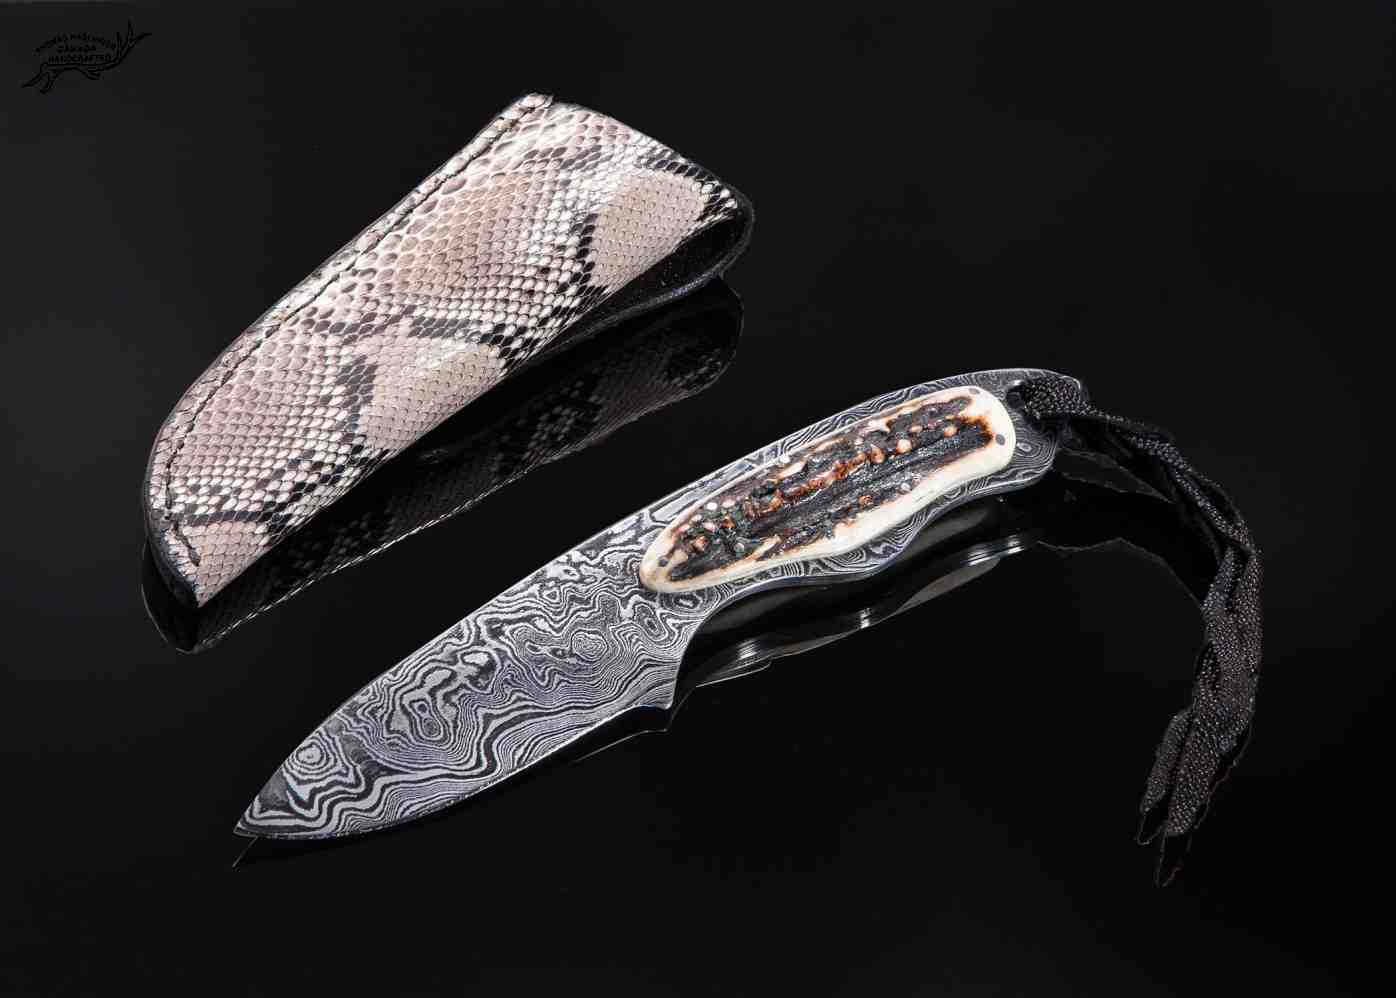 Random Damascus gentlemen knife with stag handle and python sheath